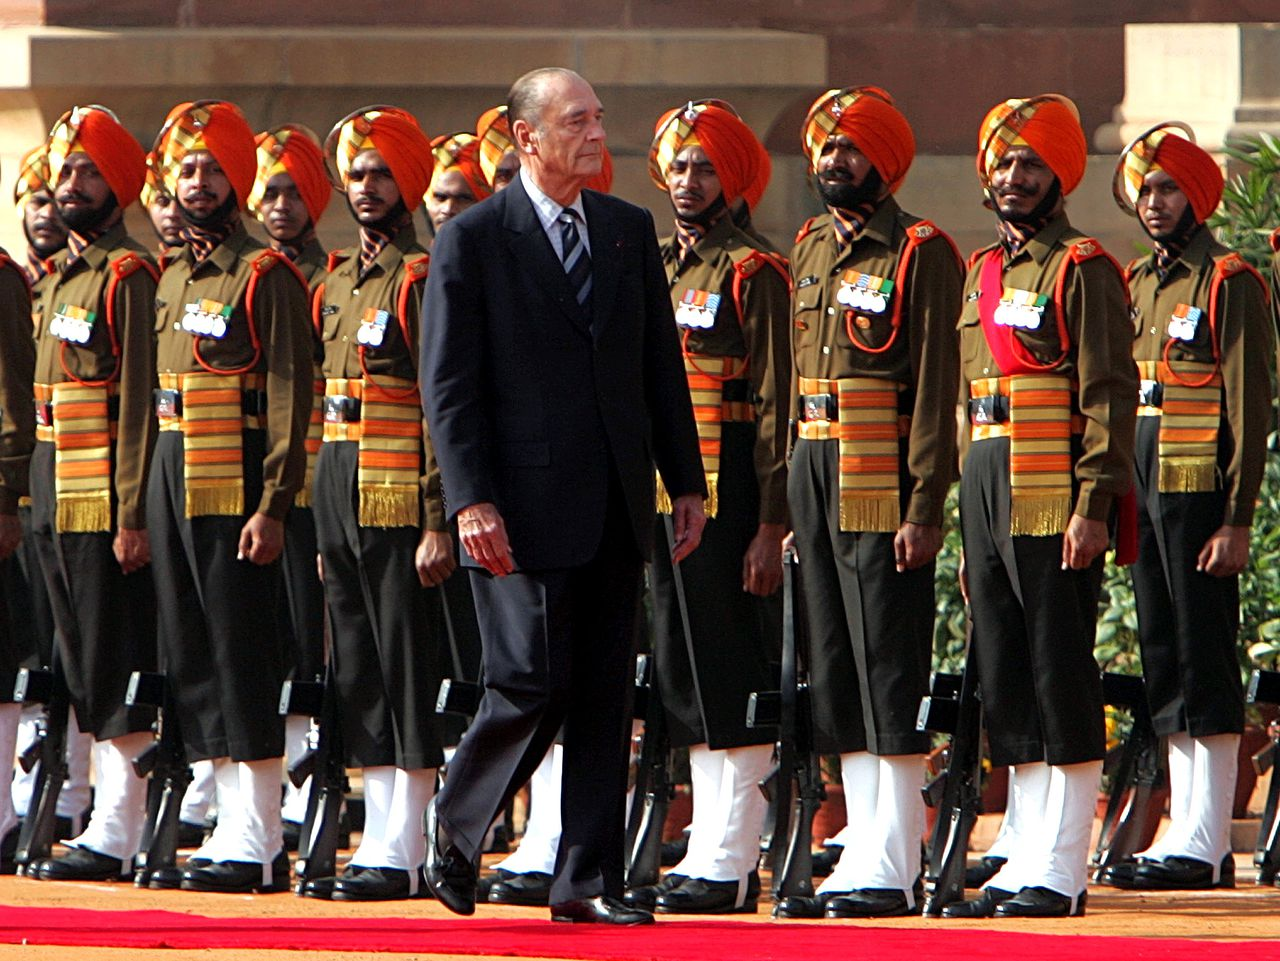 President Chirac kwam maandag in India aan voor handelsgesprekken. Maar hij moest vooral vragen beantwoorden over de vijandige houding jegens het 'Indiase' Mittal. Foto AP French President Jacques Chirac reviews an honor guard during a welcoming ceremony at the Presidential Palace in New Delhi, India, Monday Feb. 20, 2006. India and France signed an agreement Monday on future civilian nuclear cooperation, Indian Prime Minister Manmohan Singh said. (AP Photo/Remy de la Mauviniere, Pool)